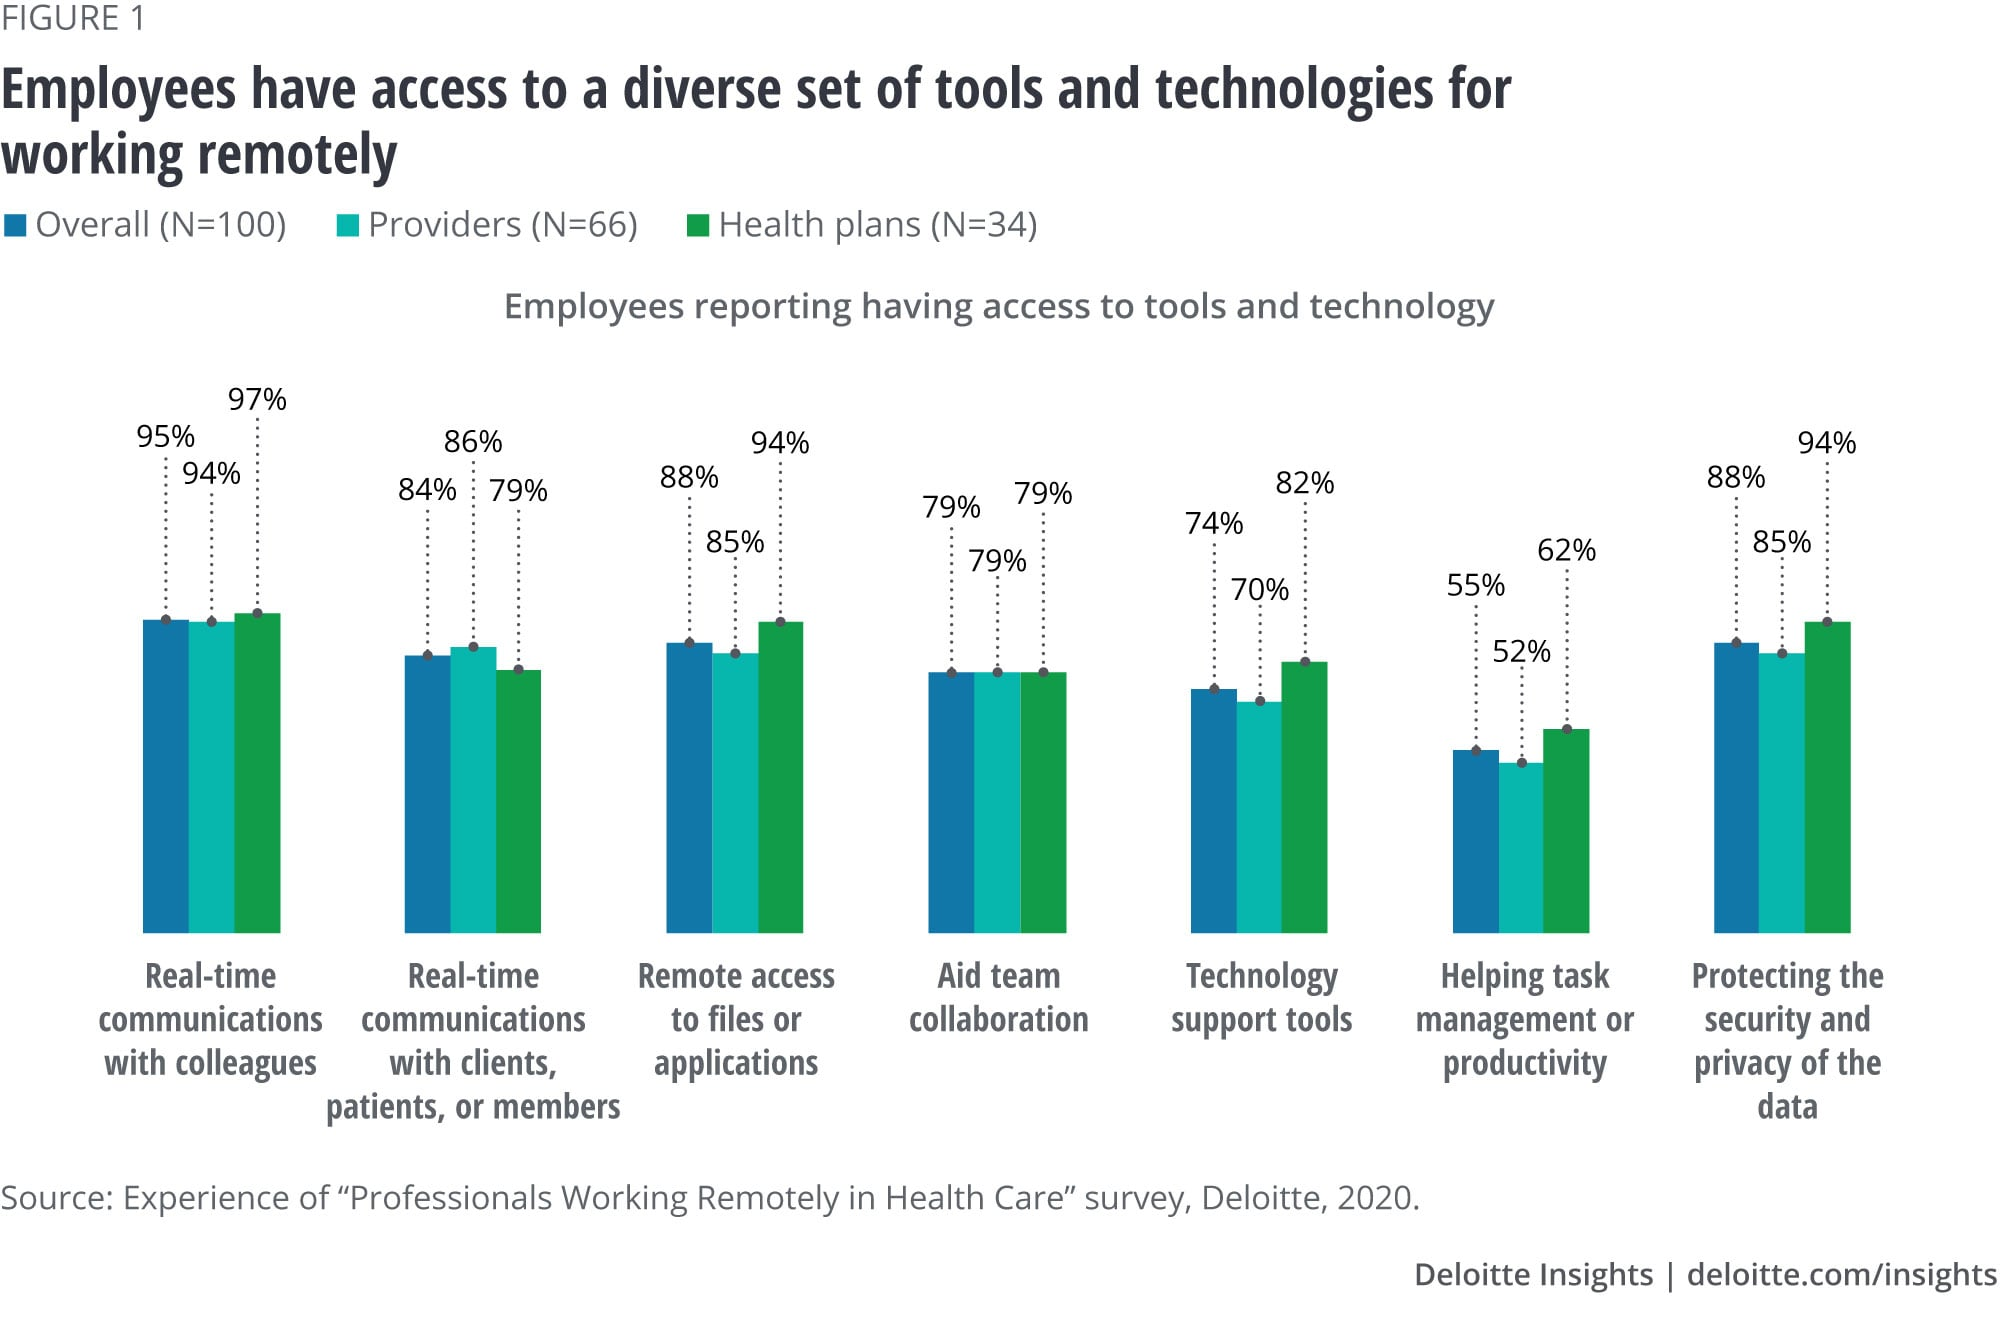 Employees have access to a diverse set of tools and technologies for working remotely